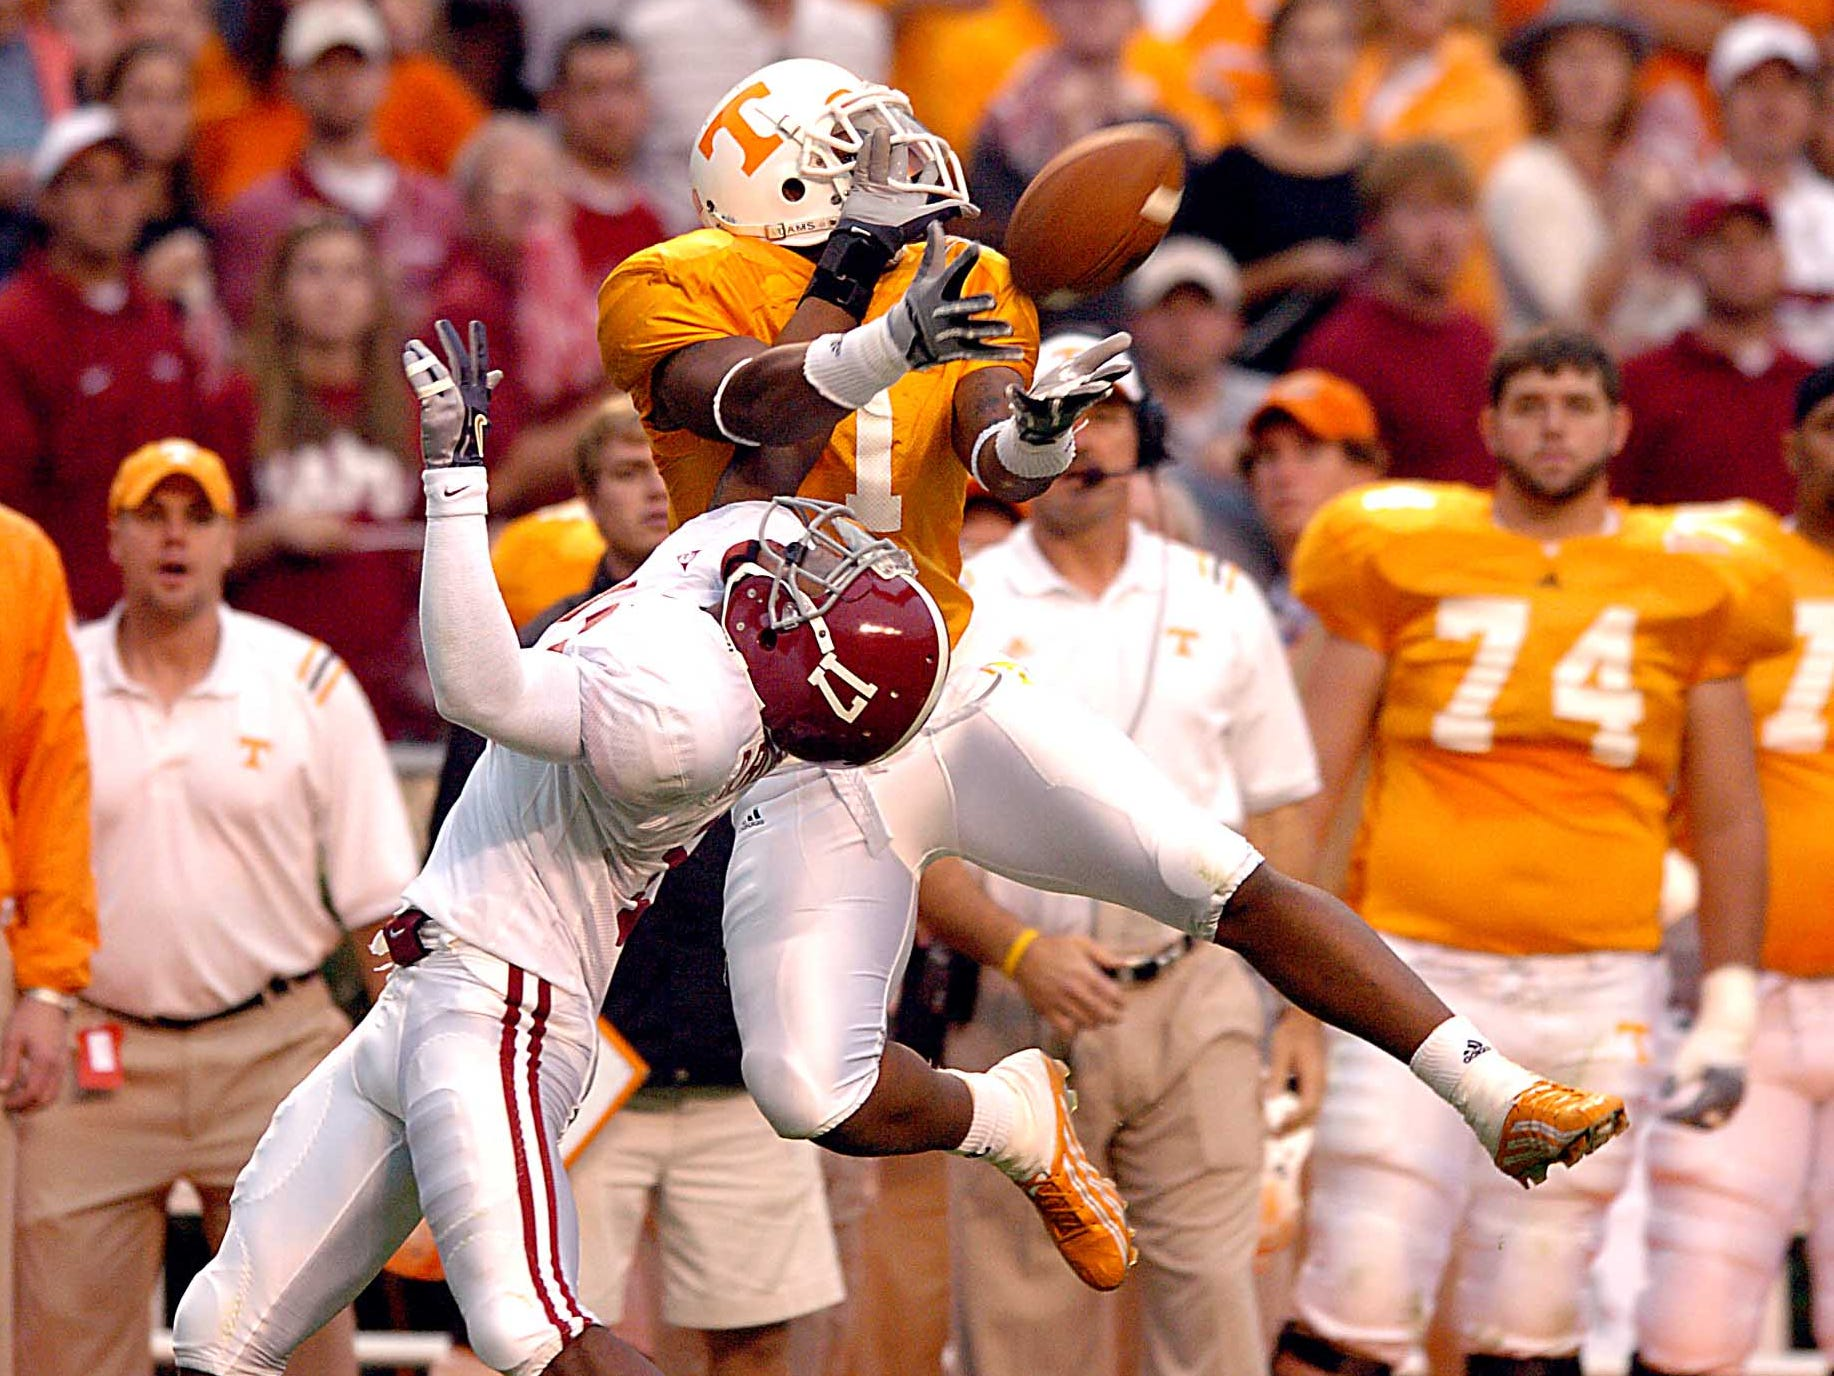 Tennessee wide receiver Jayson Swain catches a pass over Alabama cornerback Ramzee Robinson during the third quarter Saturday at Neyland Stadium Oct. 23, 2004.